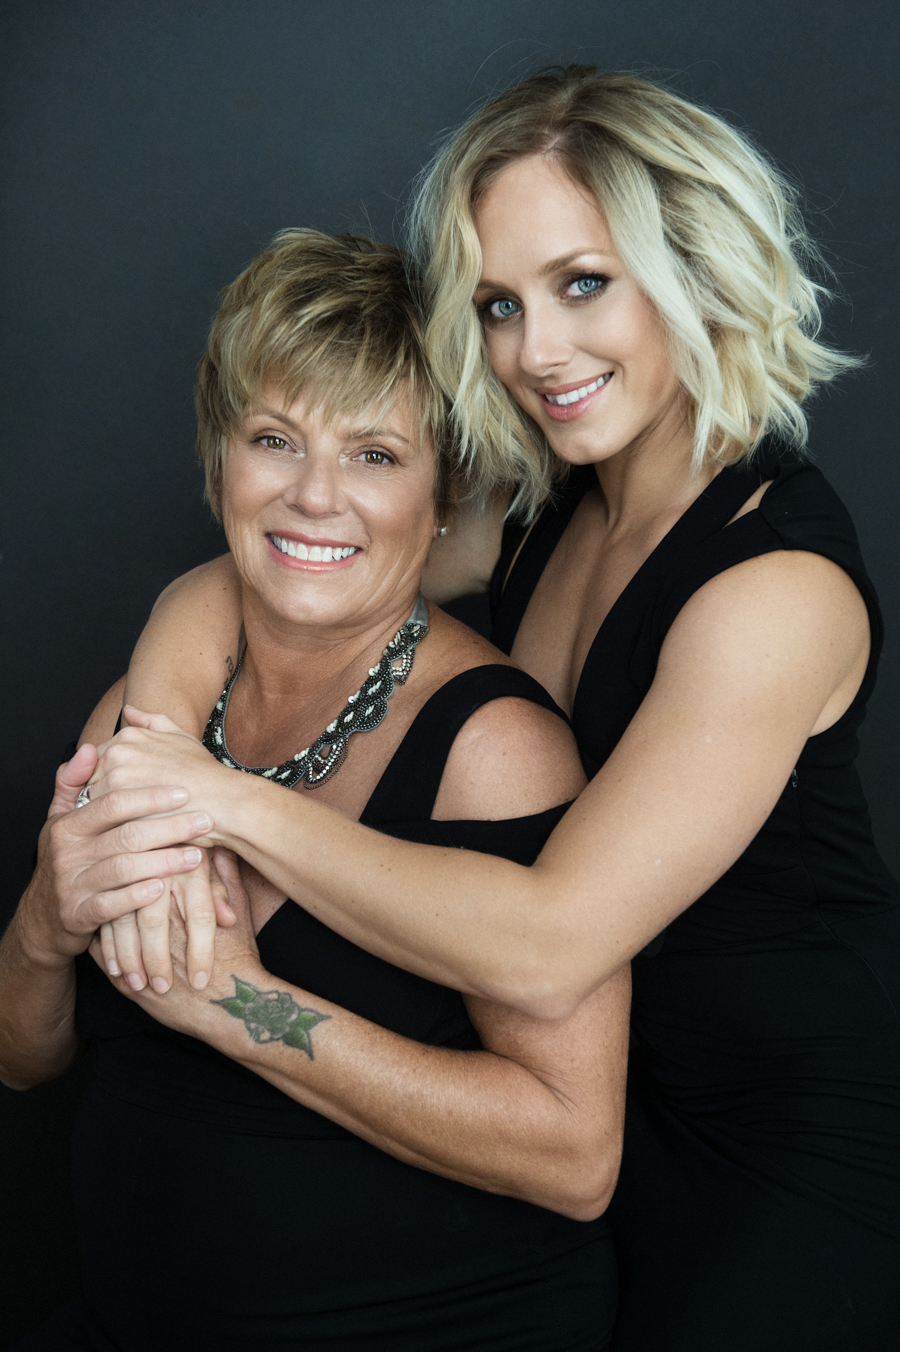 mother-daughter-photo-shoot-013